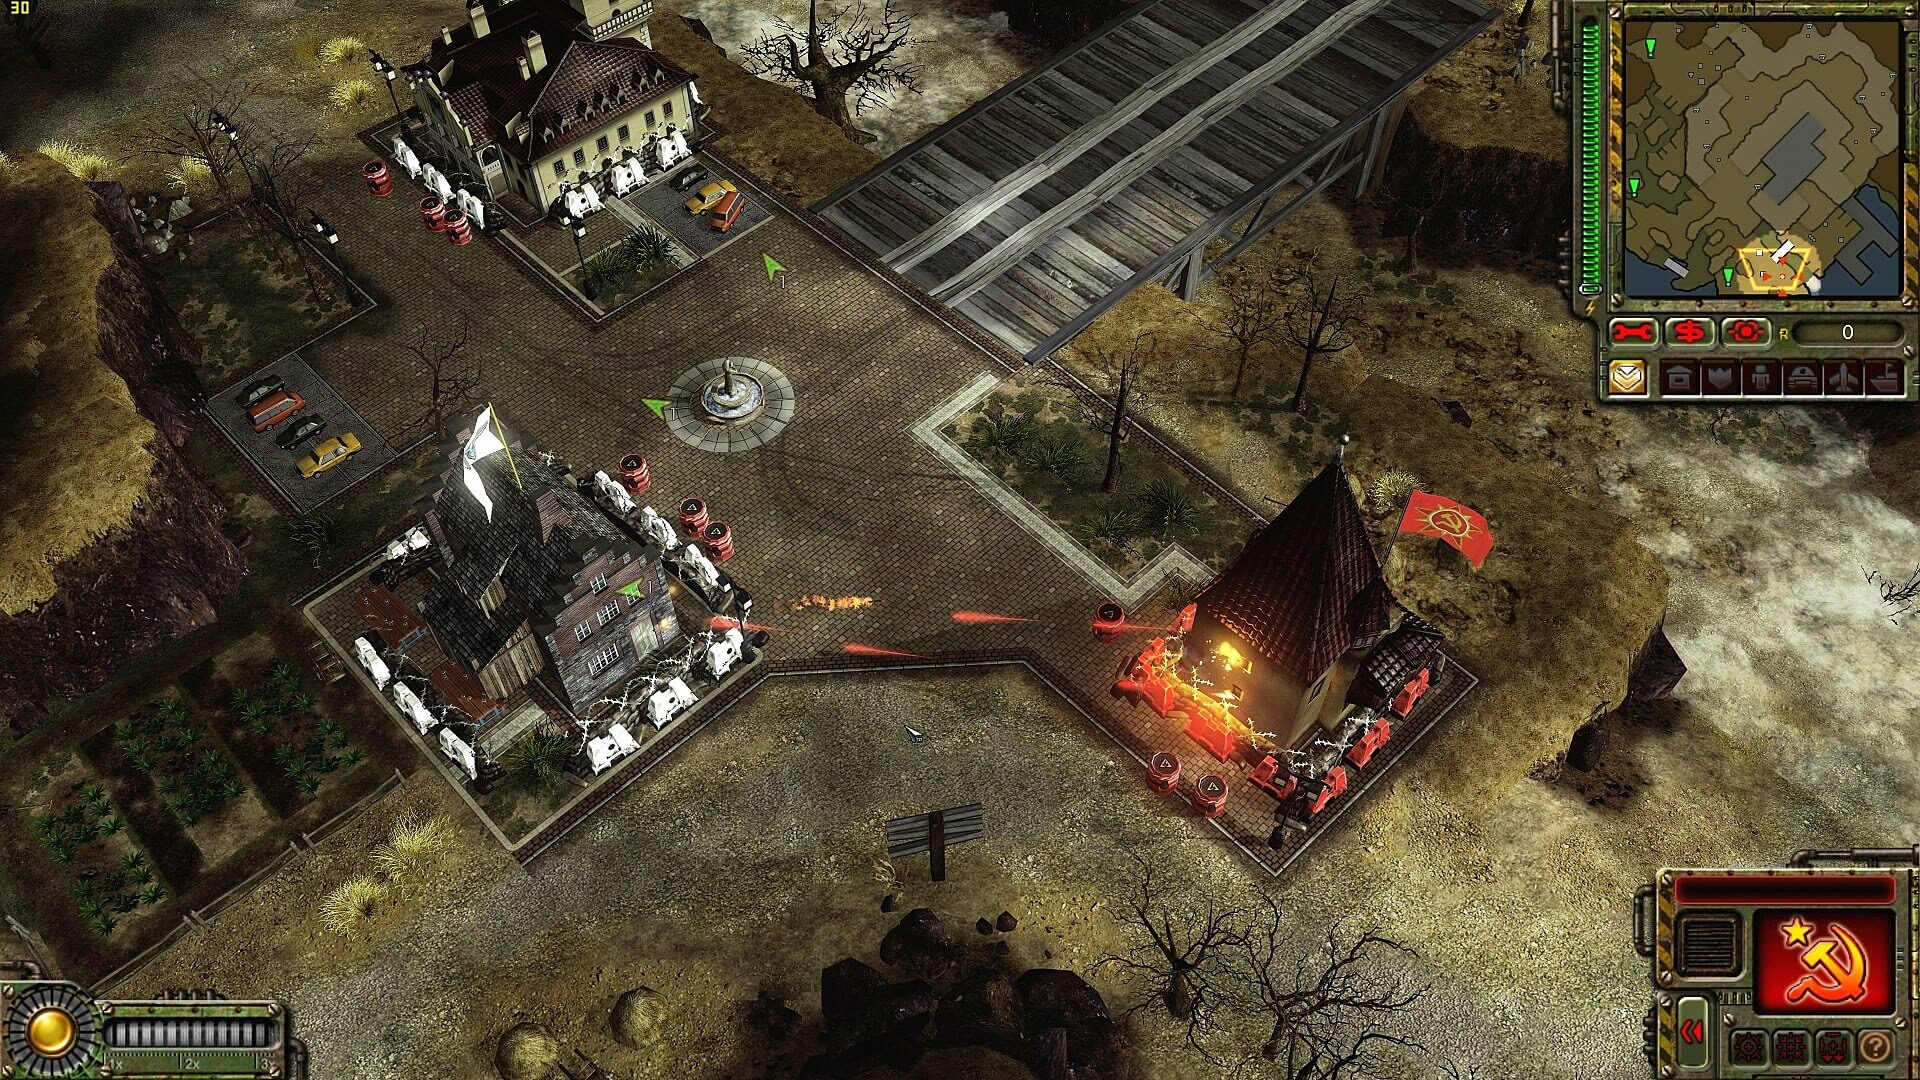 Amazing Command & Conquer: Red Alert 3 Pictures & Backgrounds